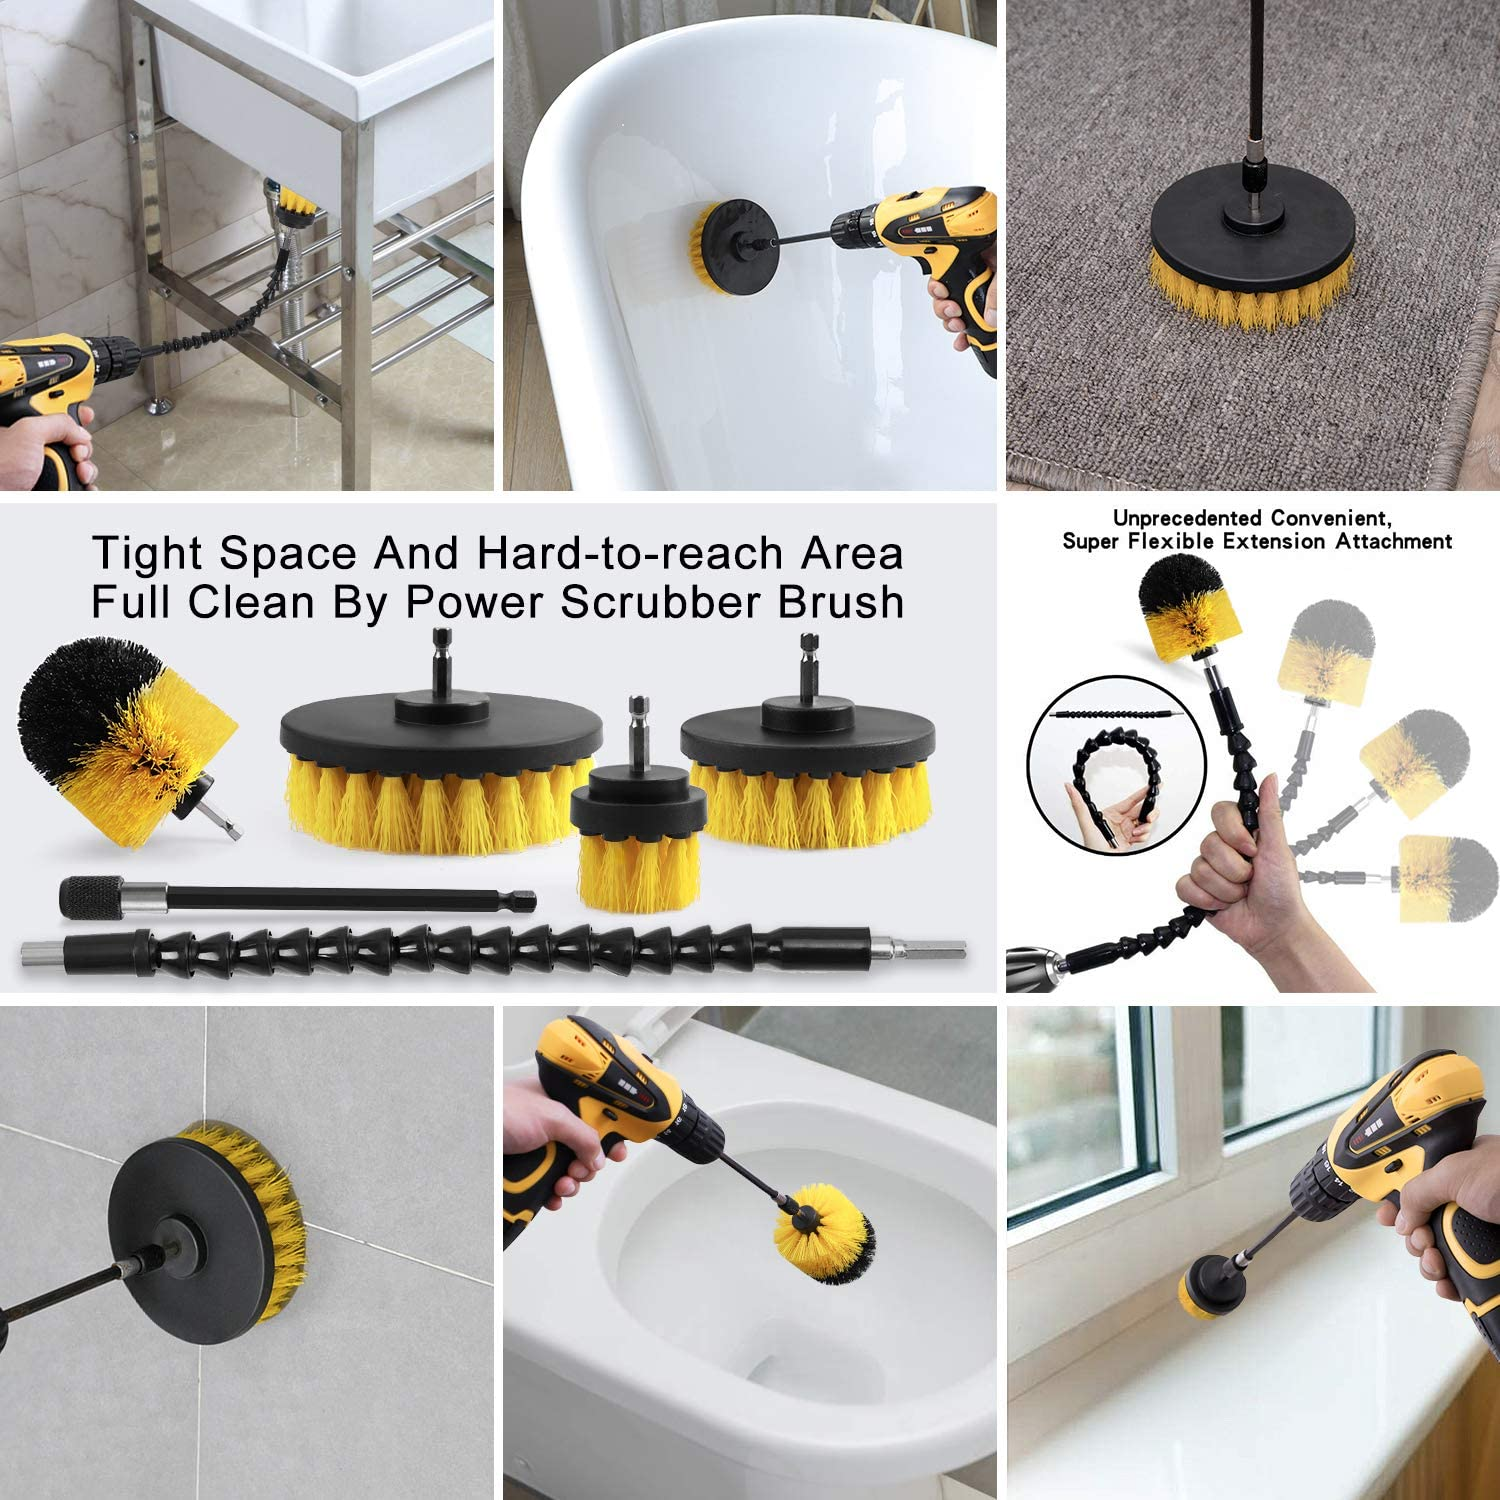 10Pcs Drill Brush Power Cleaning Scrubber nylons Brush Attachment Kit with Extender for Bathroom Tub, Shower, Tile and Car 5